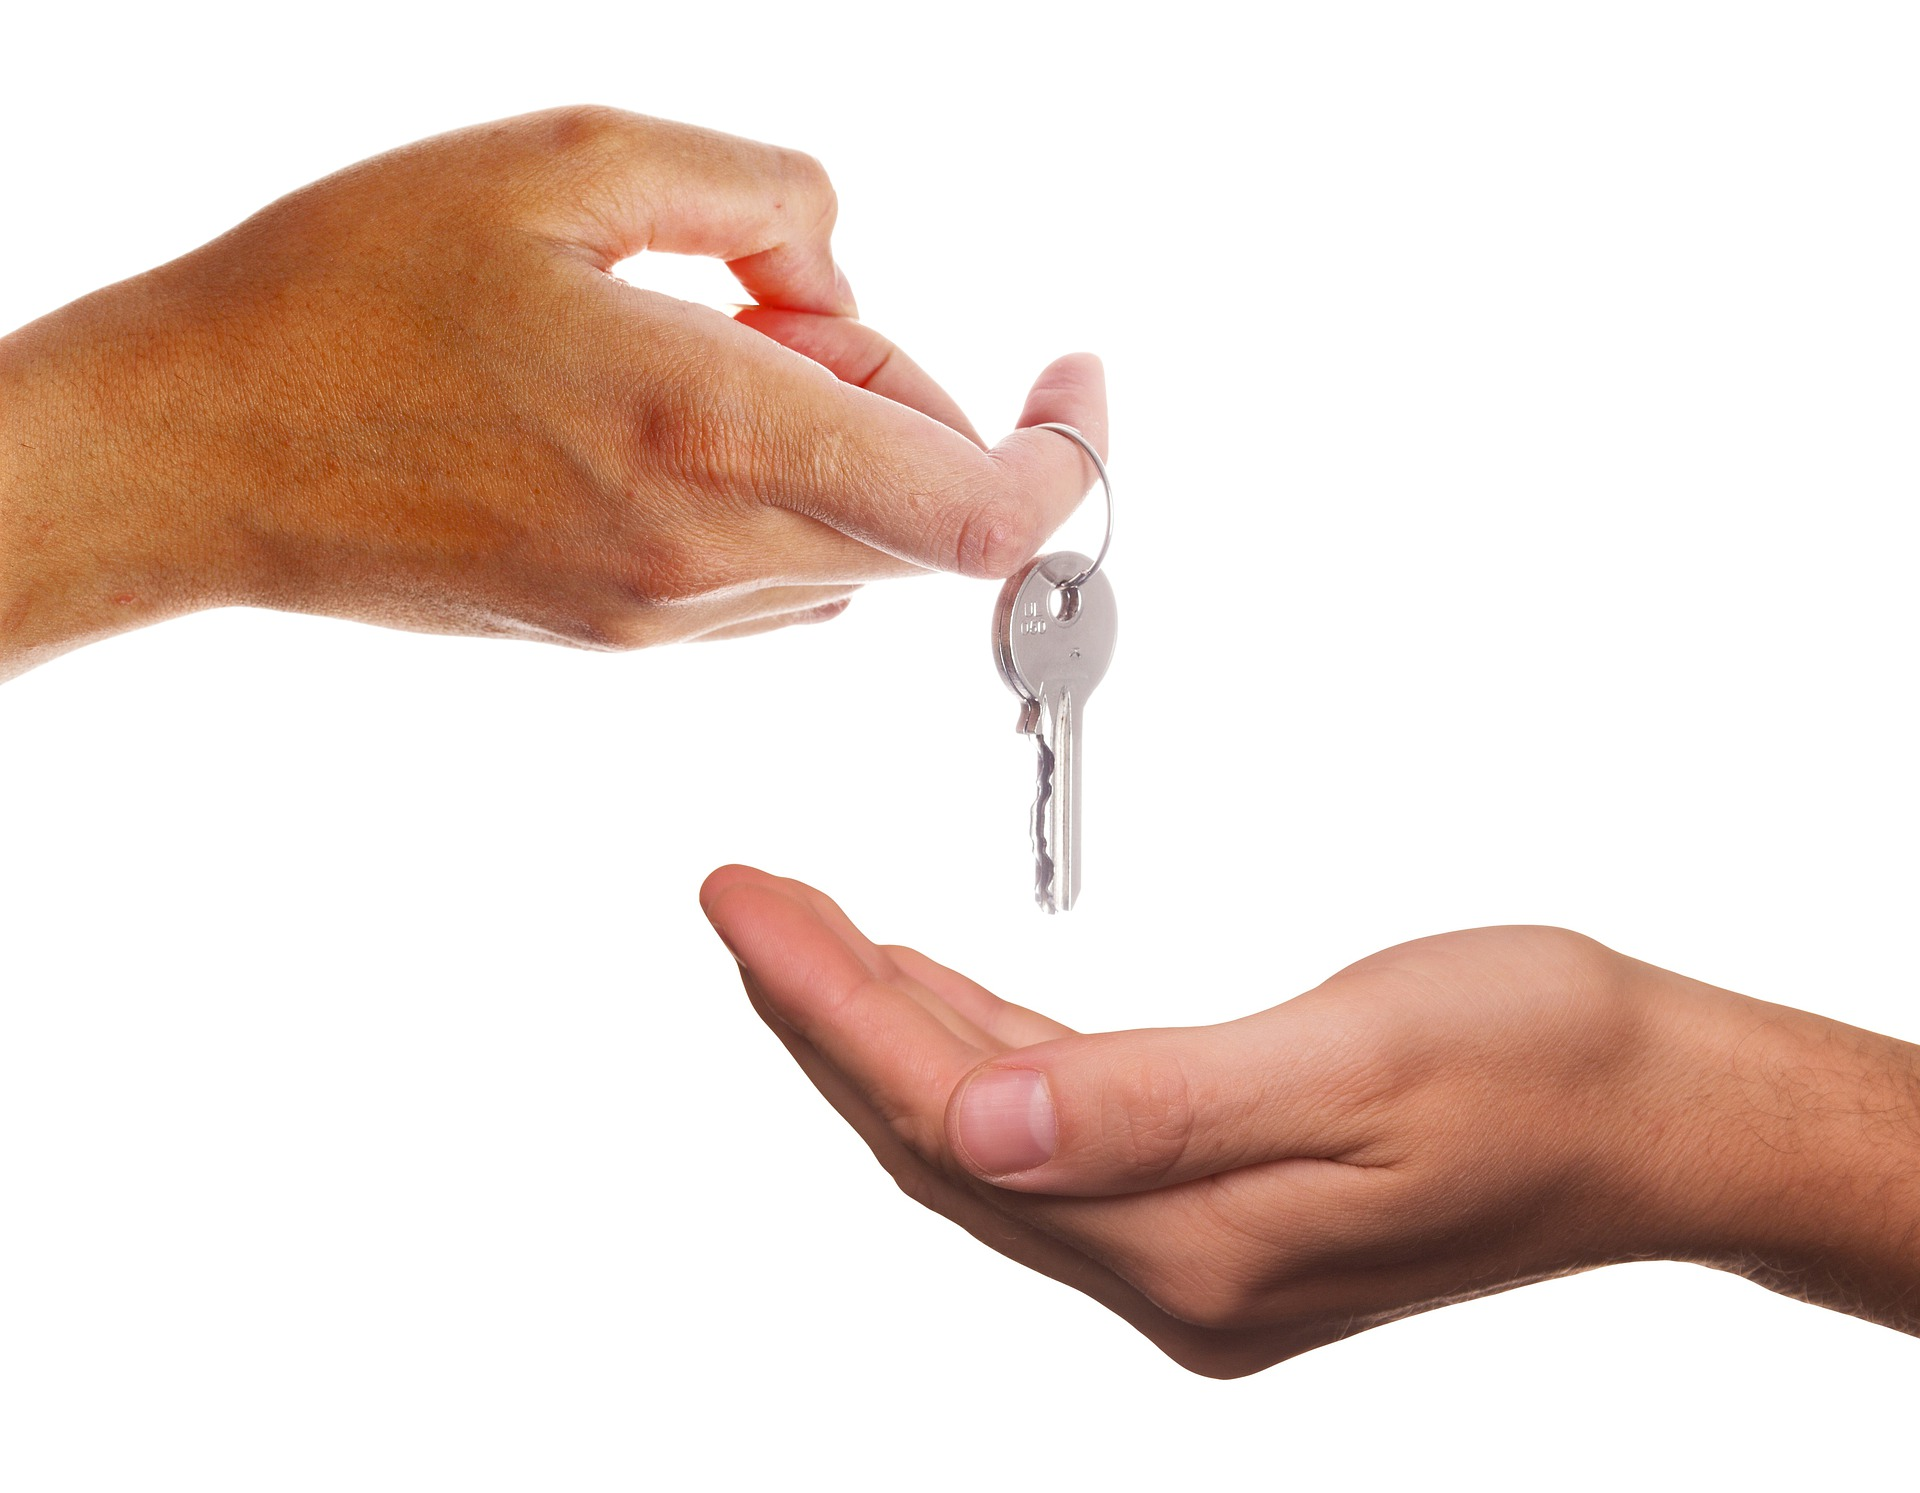 property owner giving a key to tenant